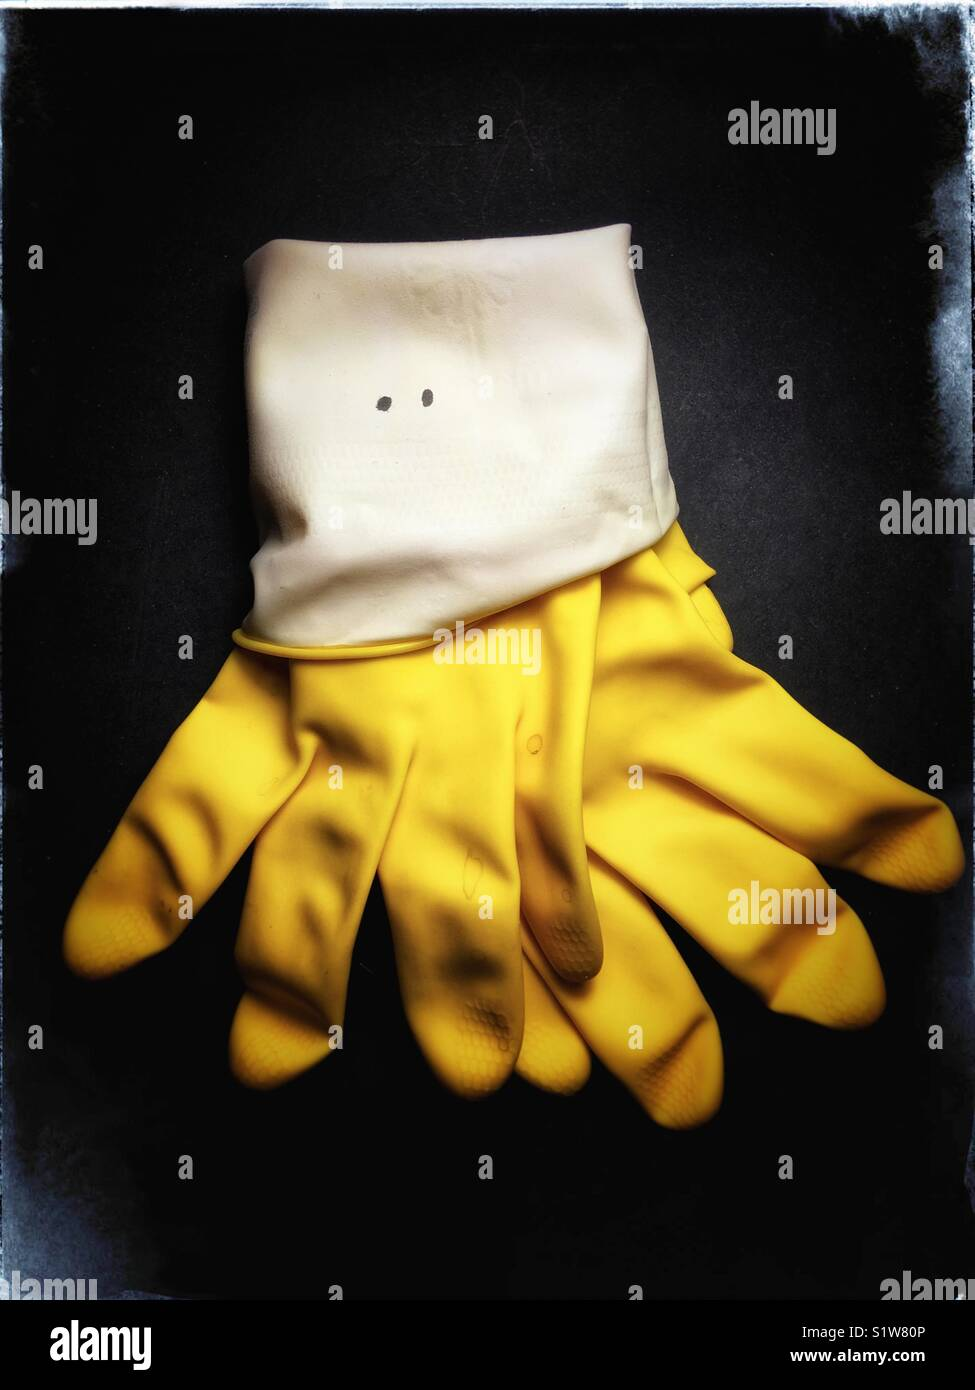 Yellow rubber washing up gloves octopus - Stock Image